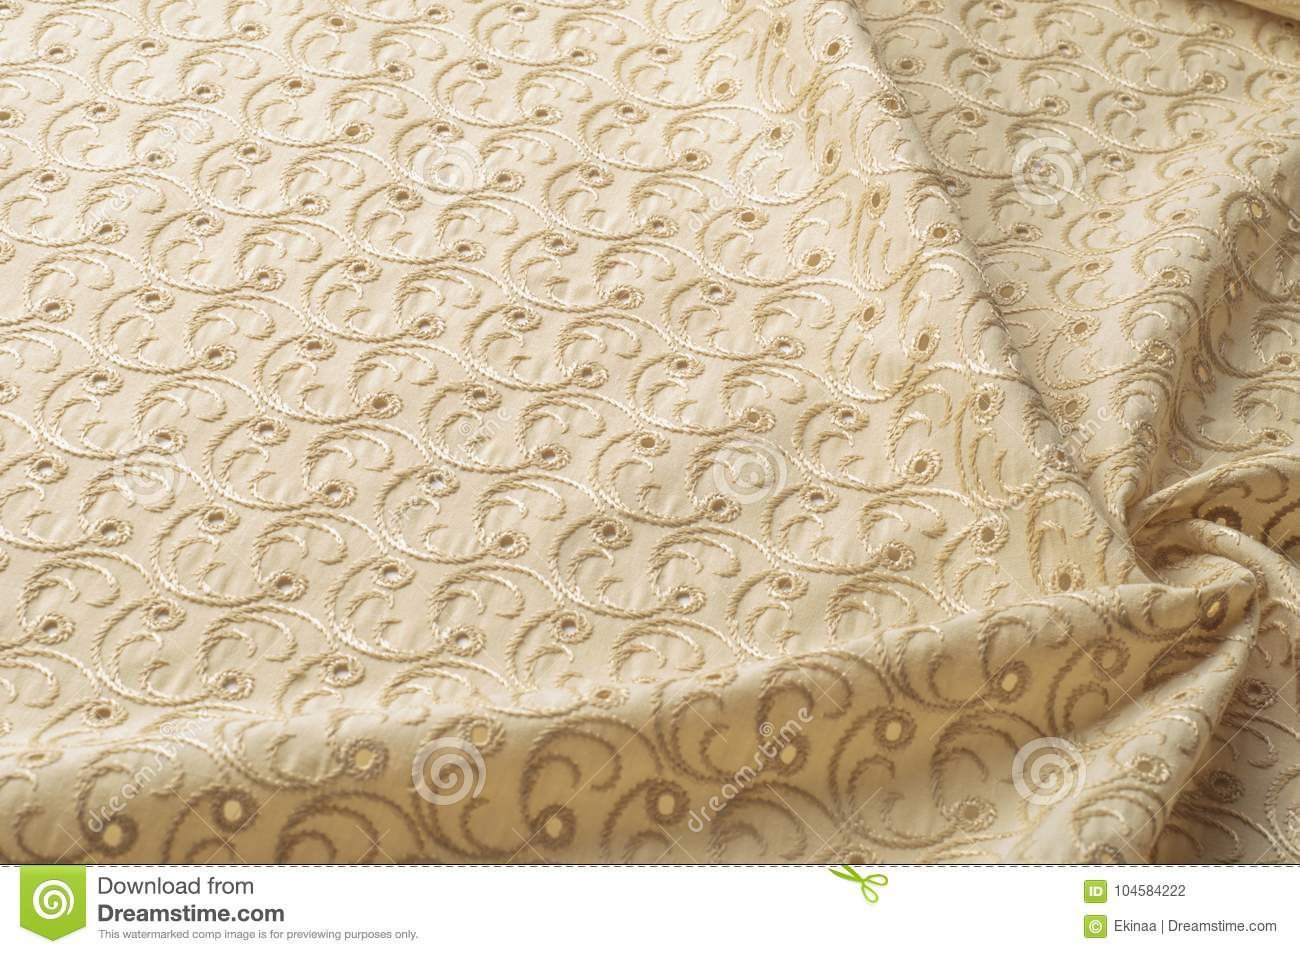 Texture background of fabric. Beige fabric with punctured circle